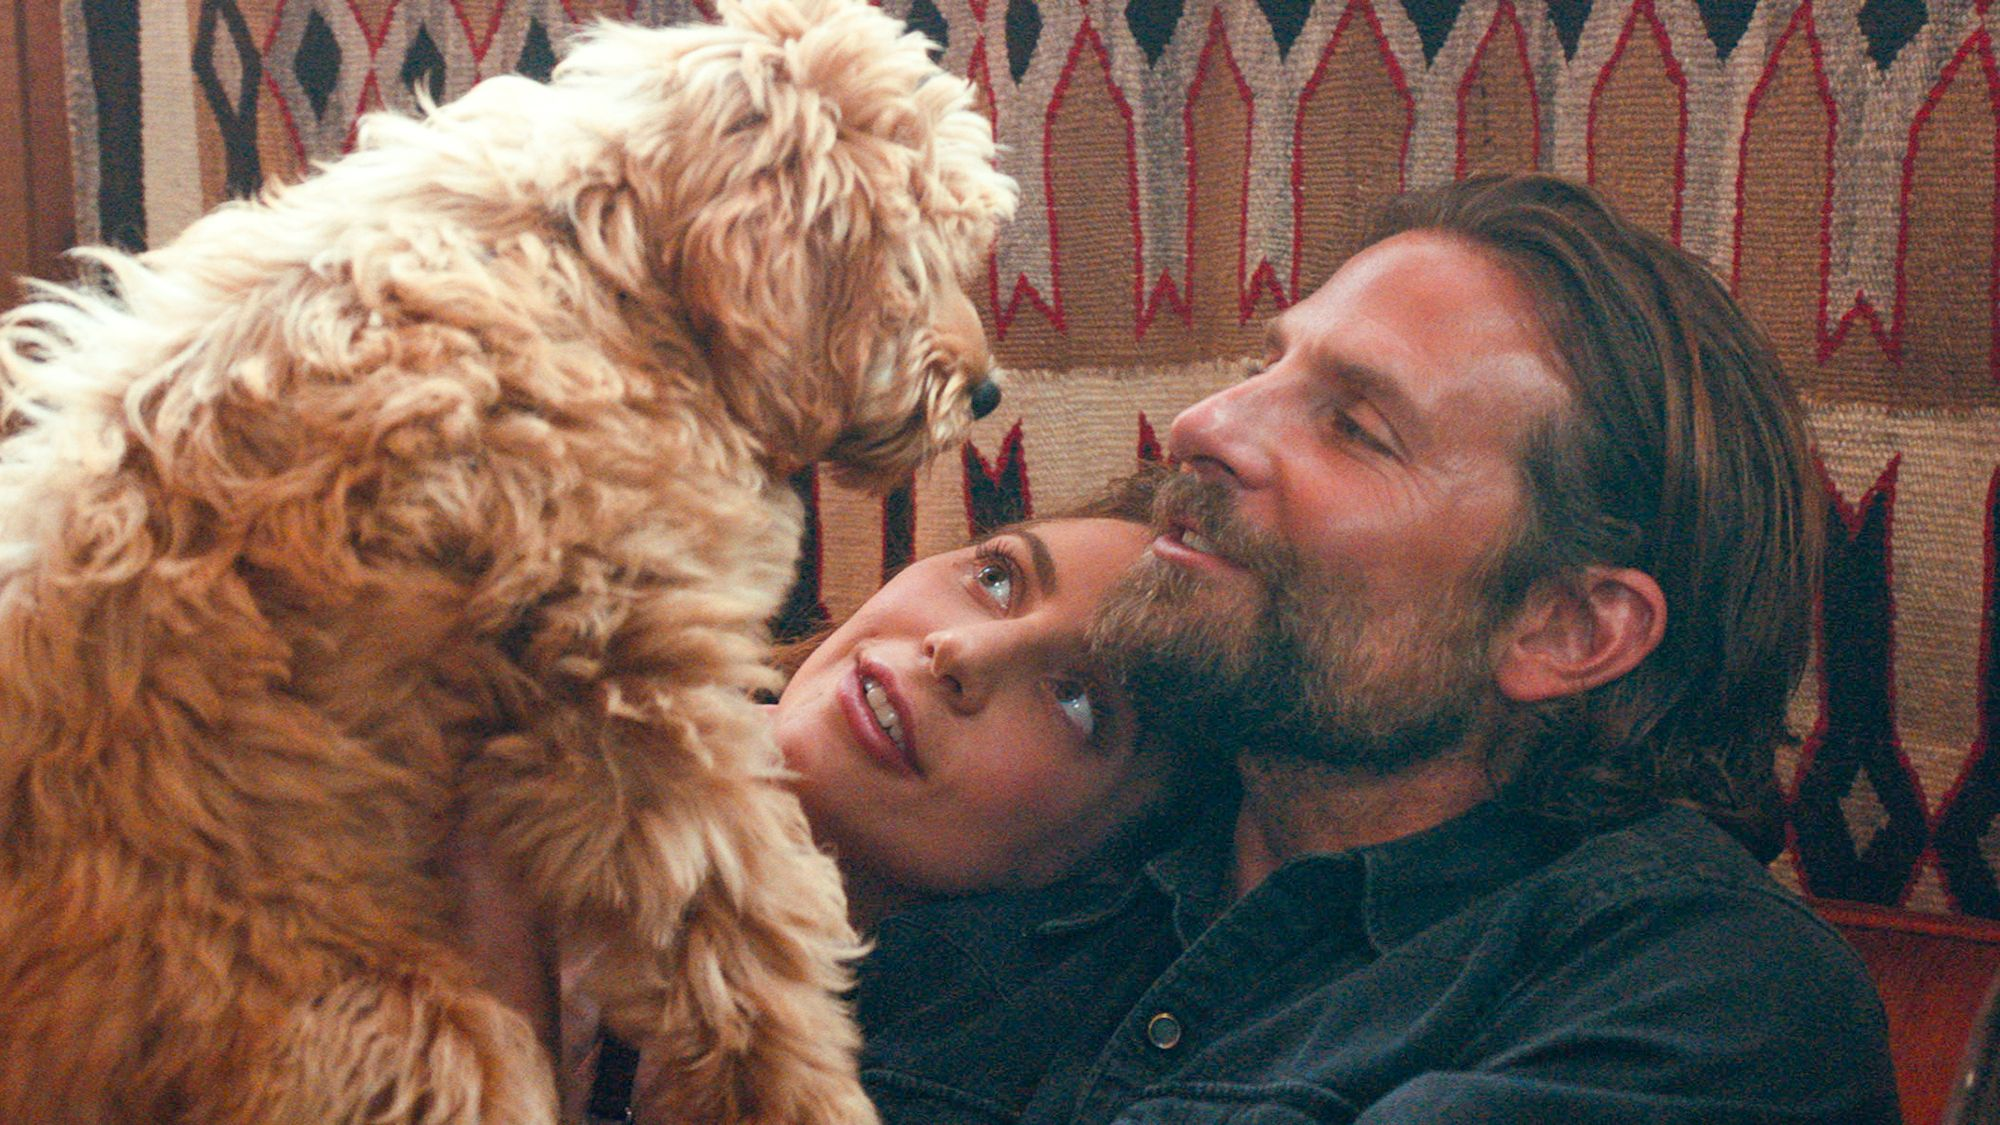 Bradley-Cooper-s-Dog-Is-the-Real-Star-of-A-Star-Is-Born